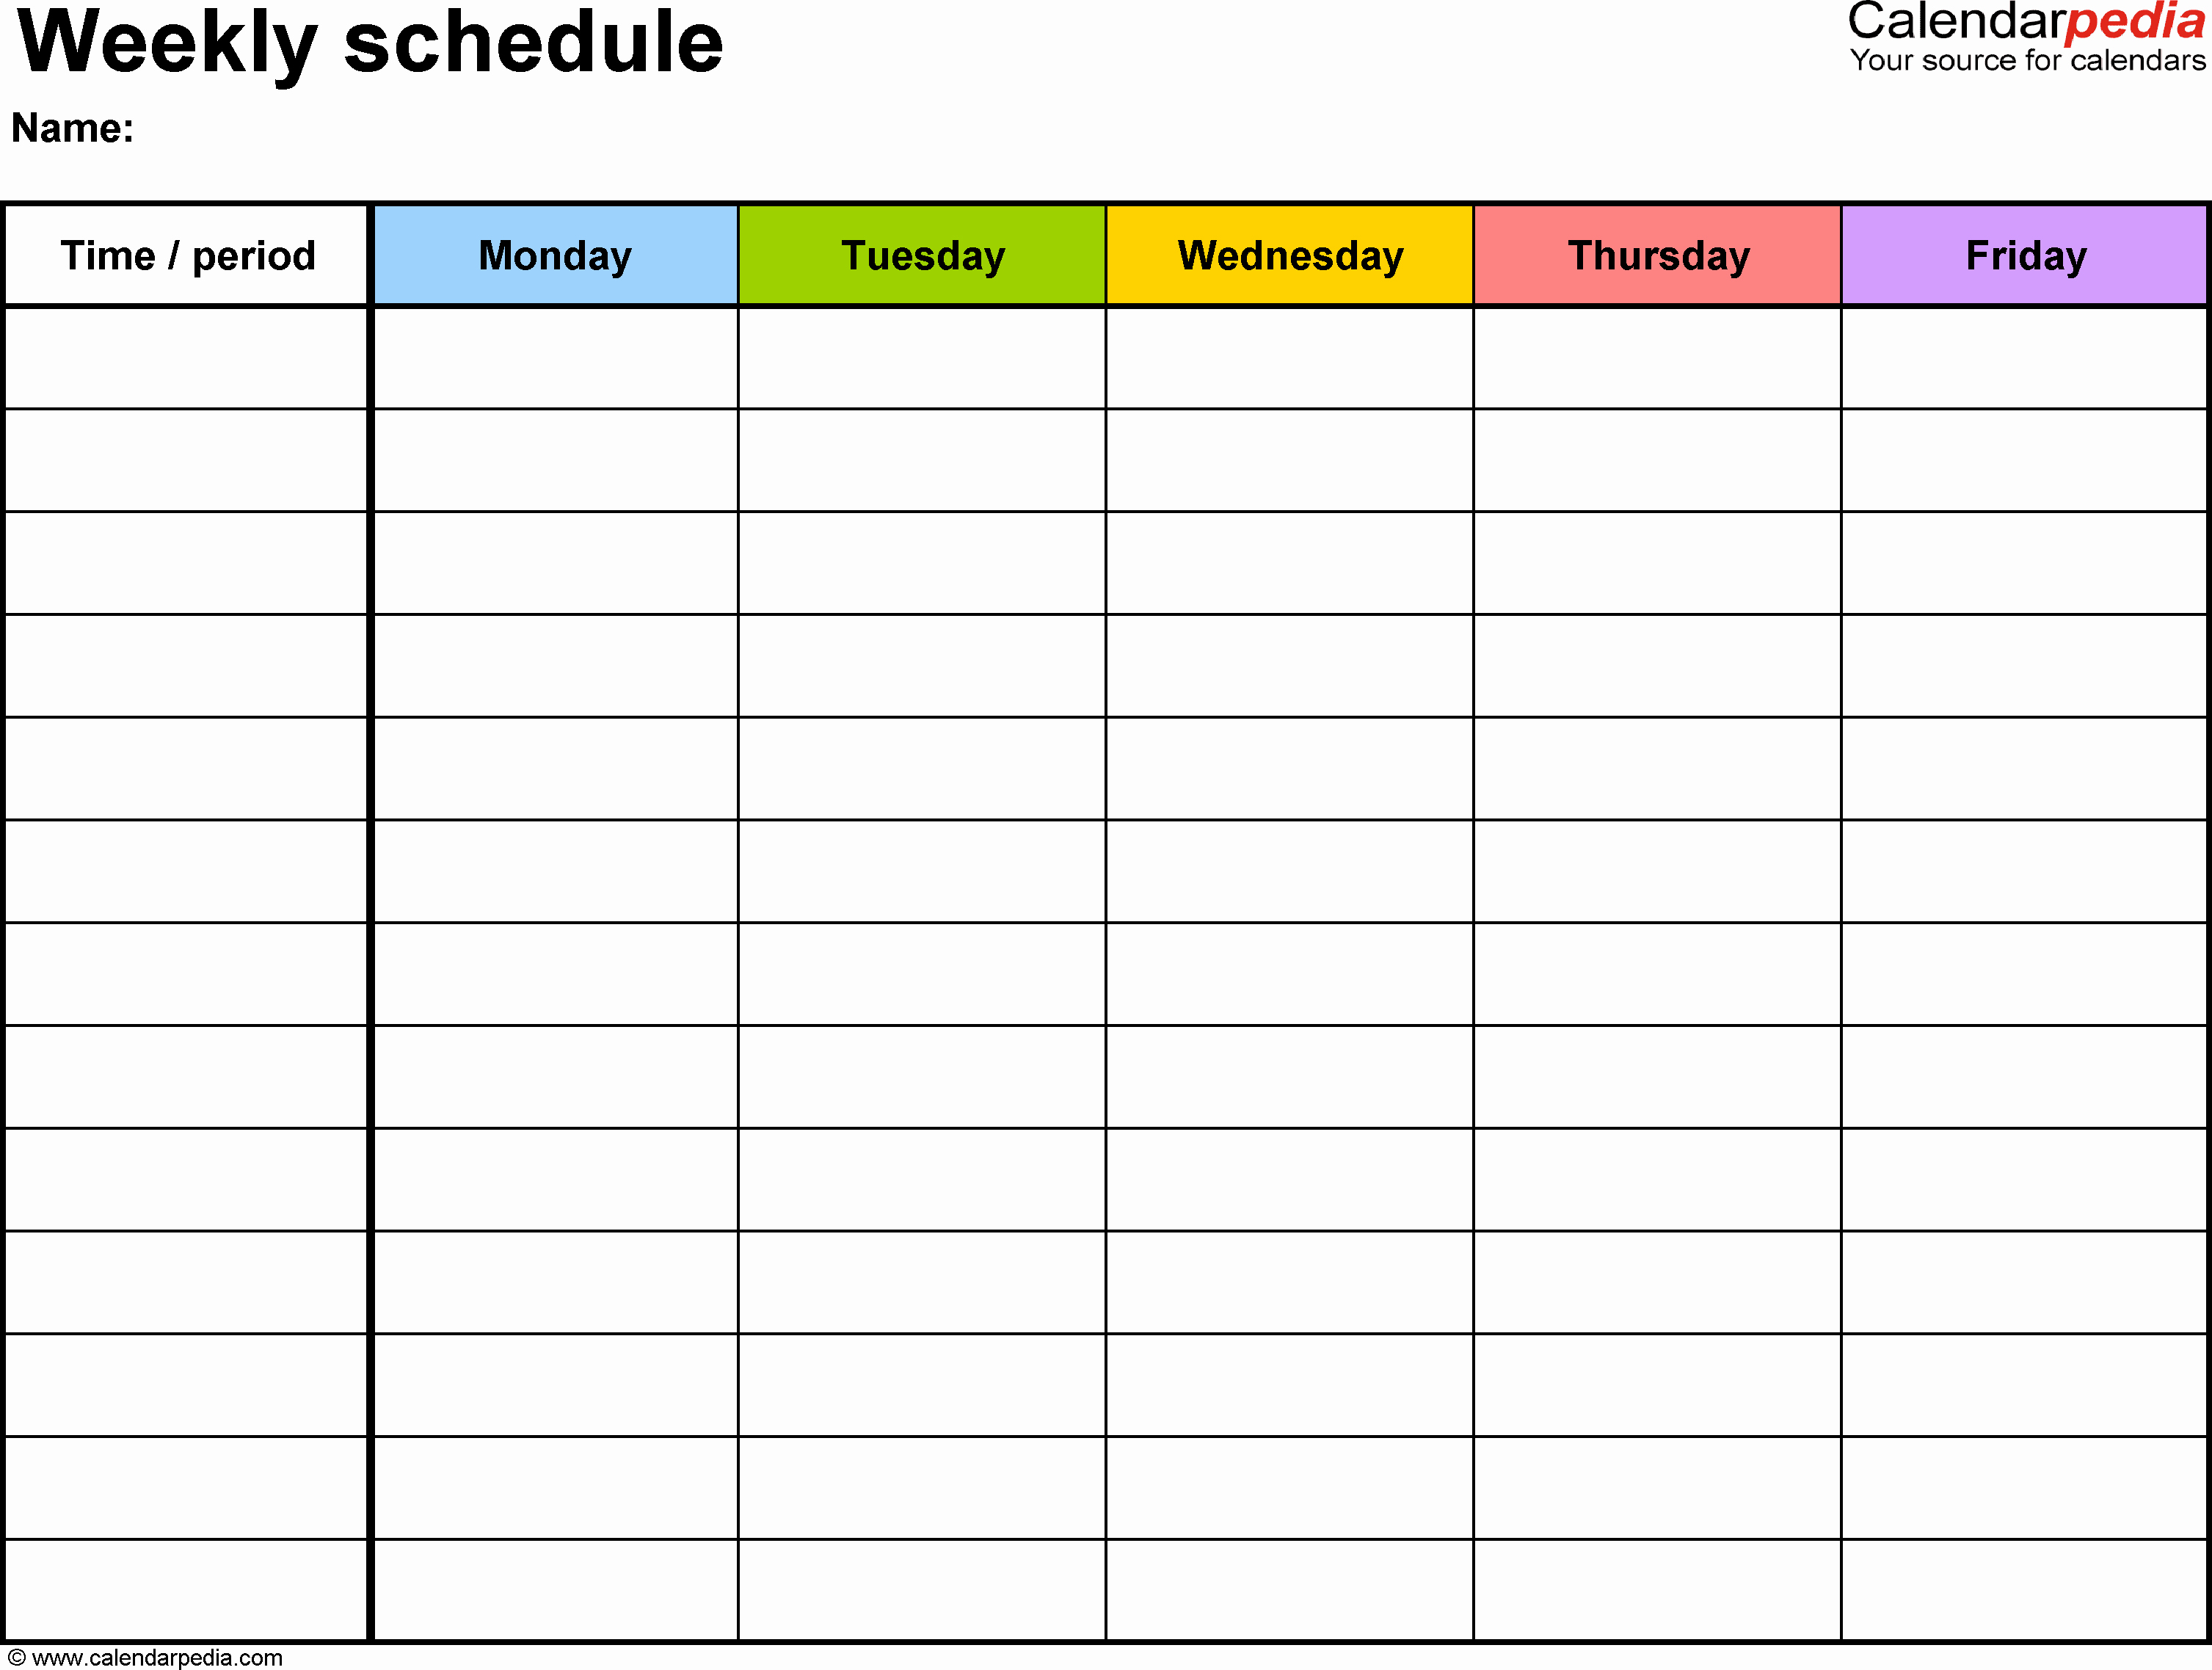 Excel Calendar Schedule Template Beautiful Weekly Calendar Excel